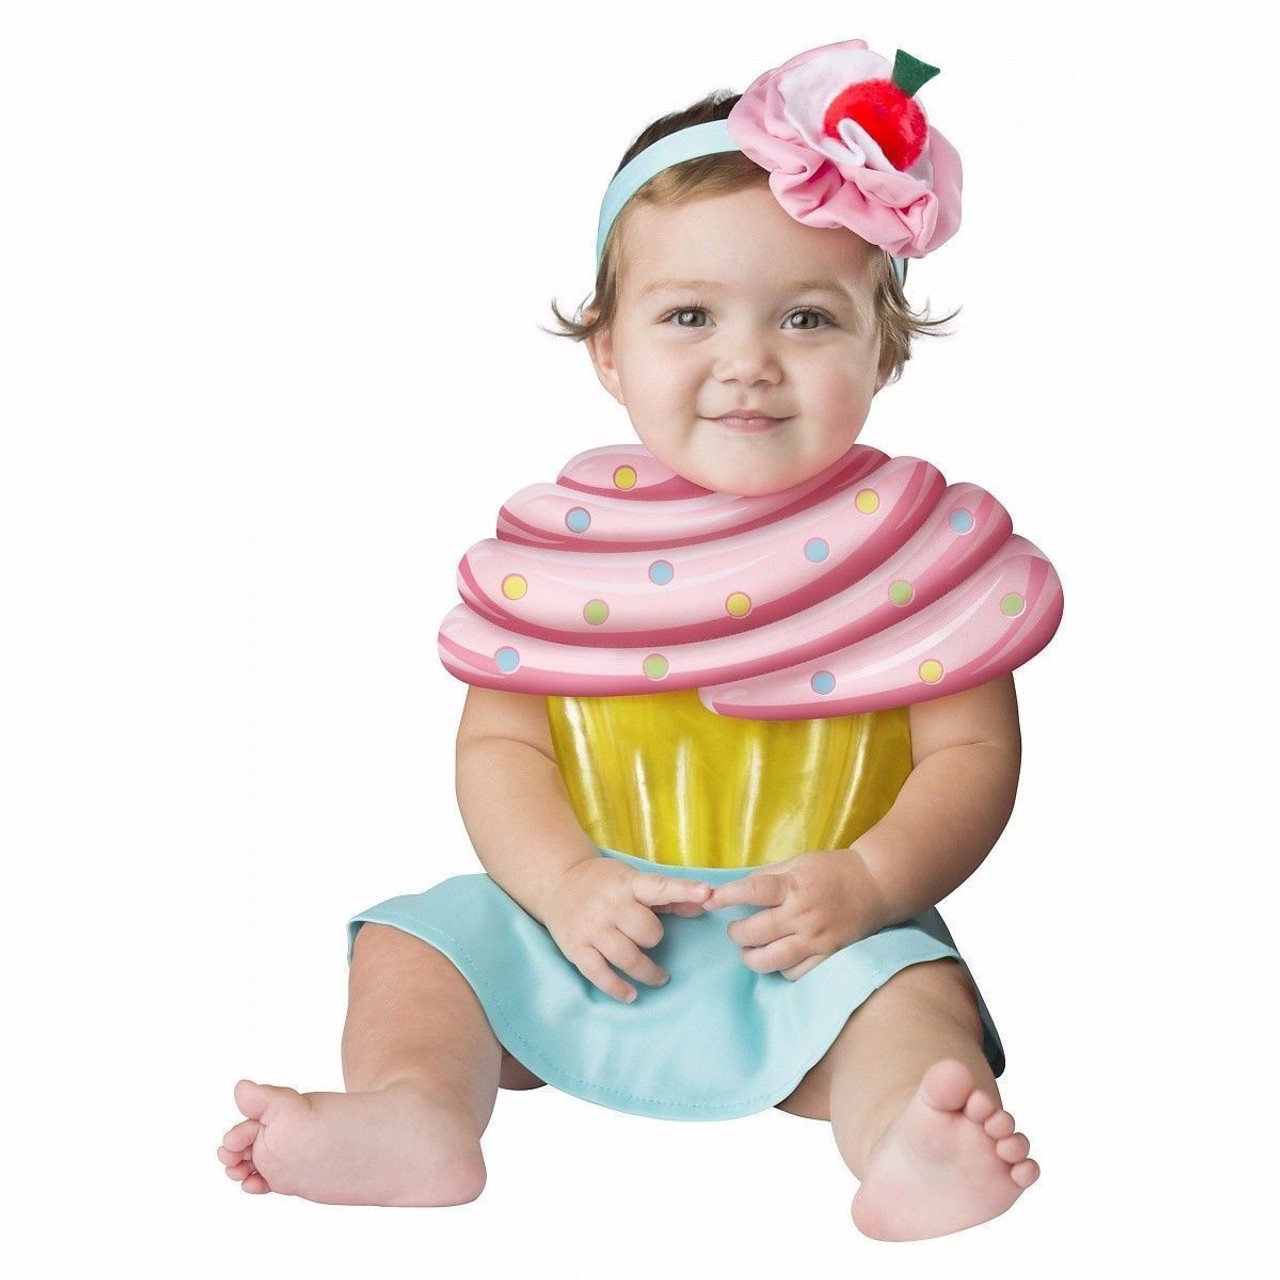 70a1249ea2b8 Incharacter Cupcake Cutie Candy Sweet Girls Infant Baby Halloween Costume  16074 - Fearless Apparel